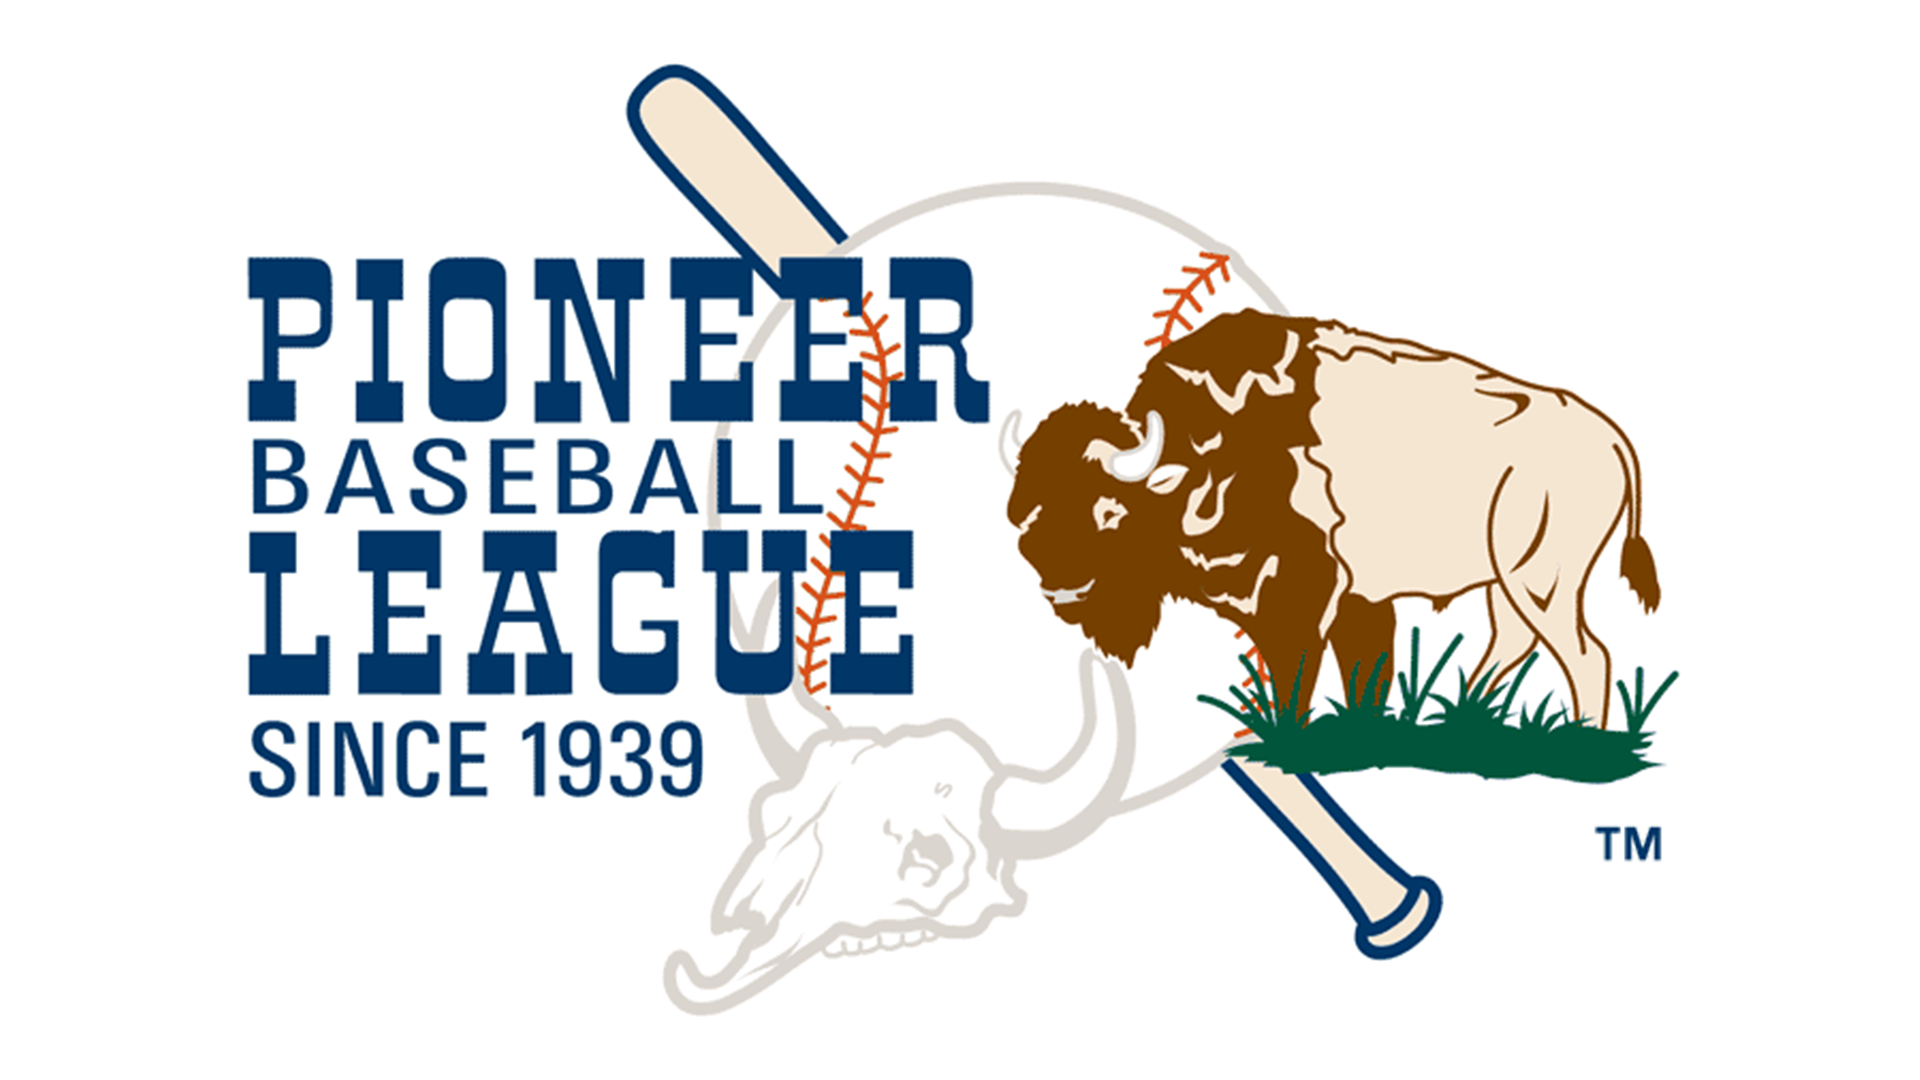 Pioneer League logo and symbol, meaning, history, PNG